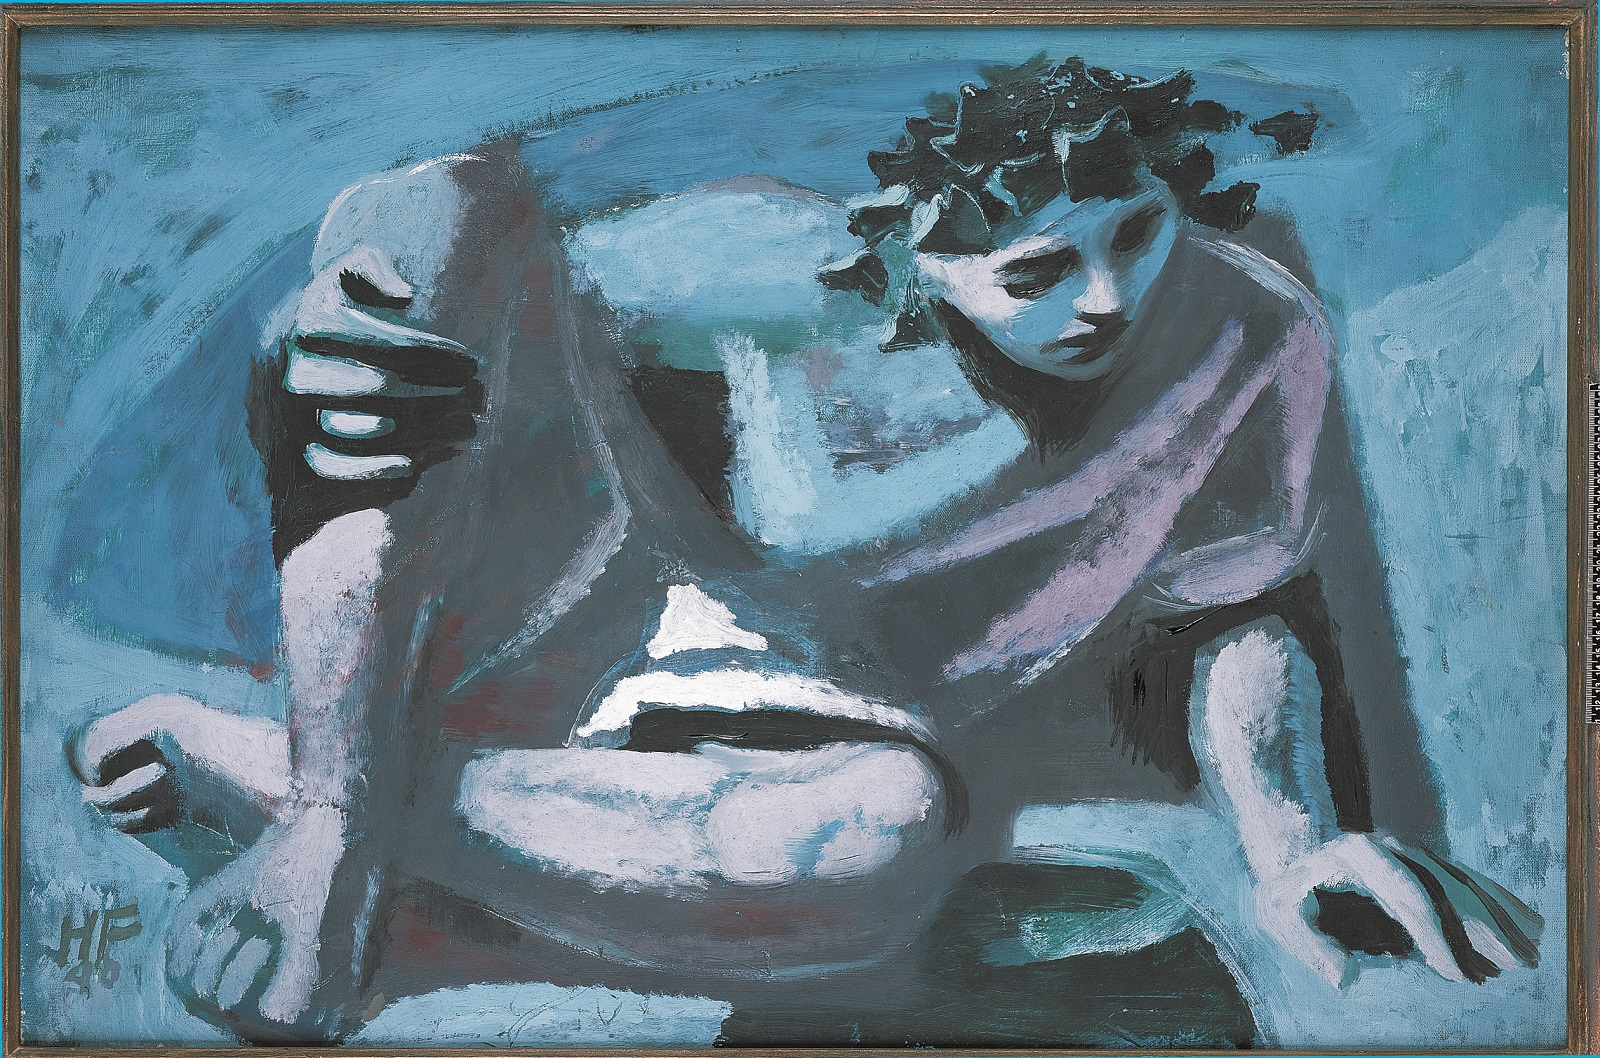 Blue toned painting of a young man with dark curly hair completely absorbed in looking at his reflection in an unseen pool at the bottom of the painting.